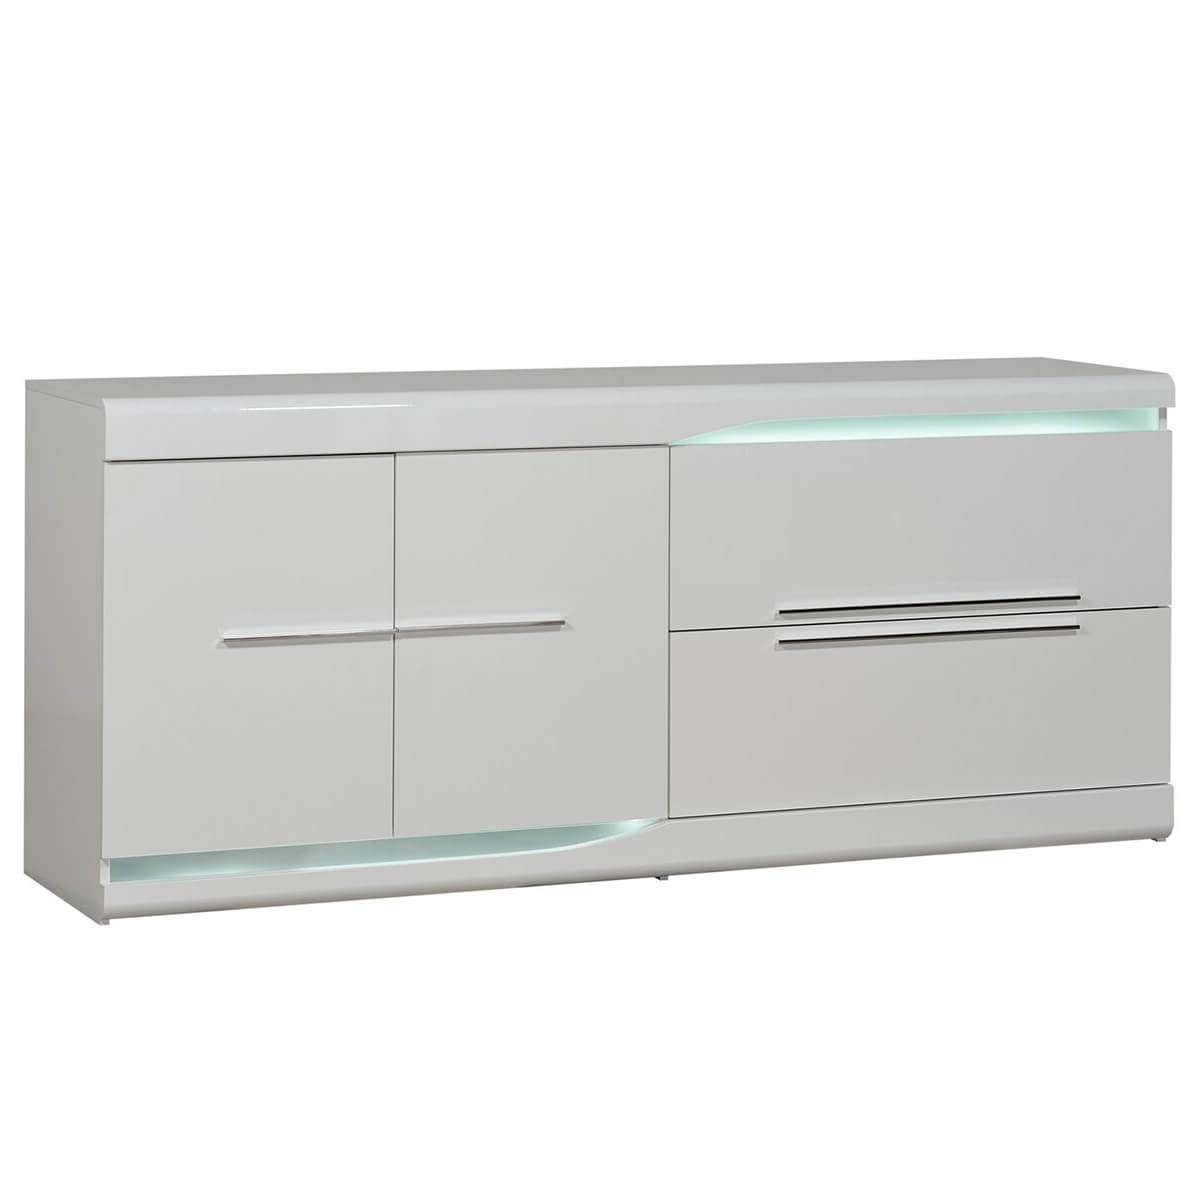 Ovio White Sideboard With Led Lights | Modern Sideboards | Fads With Regard To Sideboards With Lights (View 7 of 20)